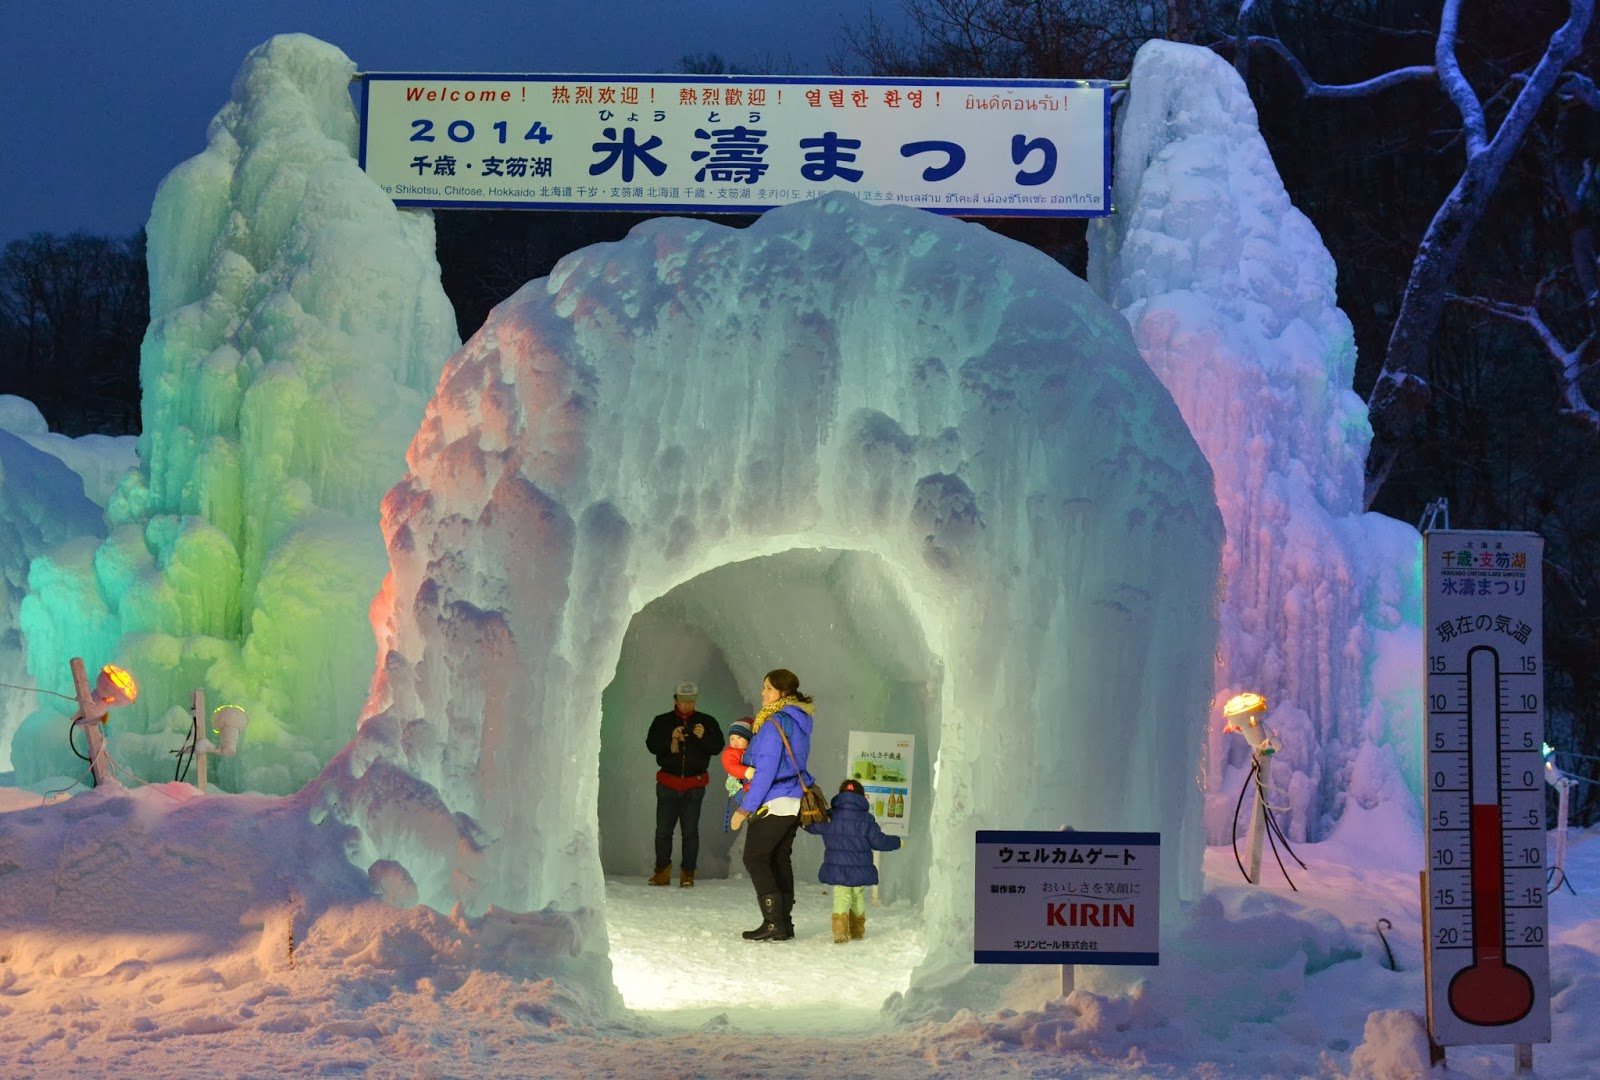 Visitor, Welcome Gate, Chitose-Lake Shikotsu, Ice Festival, Chitose, Hikkaido, Annual, Ice, Festival, Offbeat, News, Weather, Illuminate, Colorful Light, World,